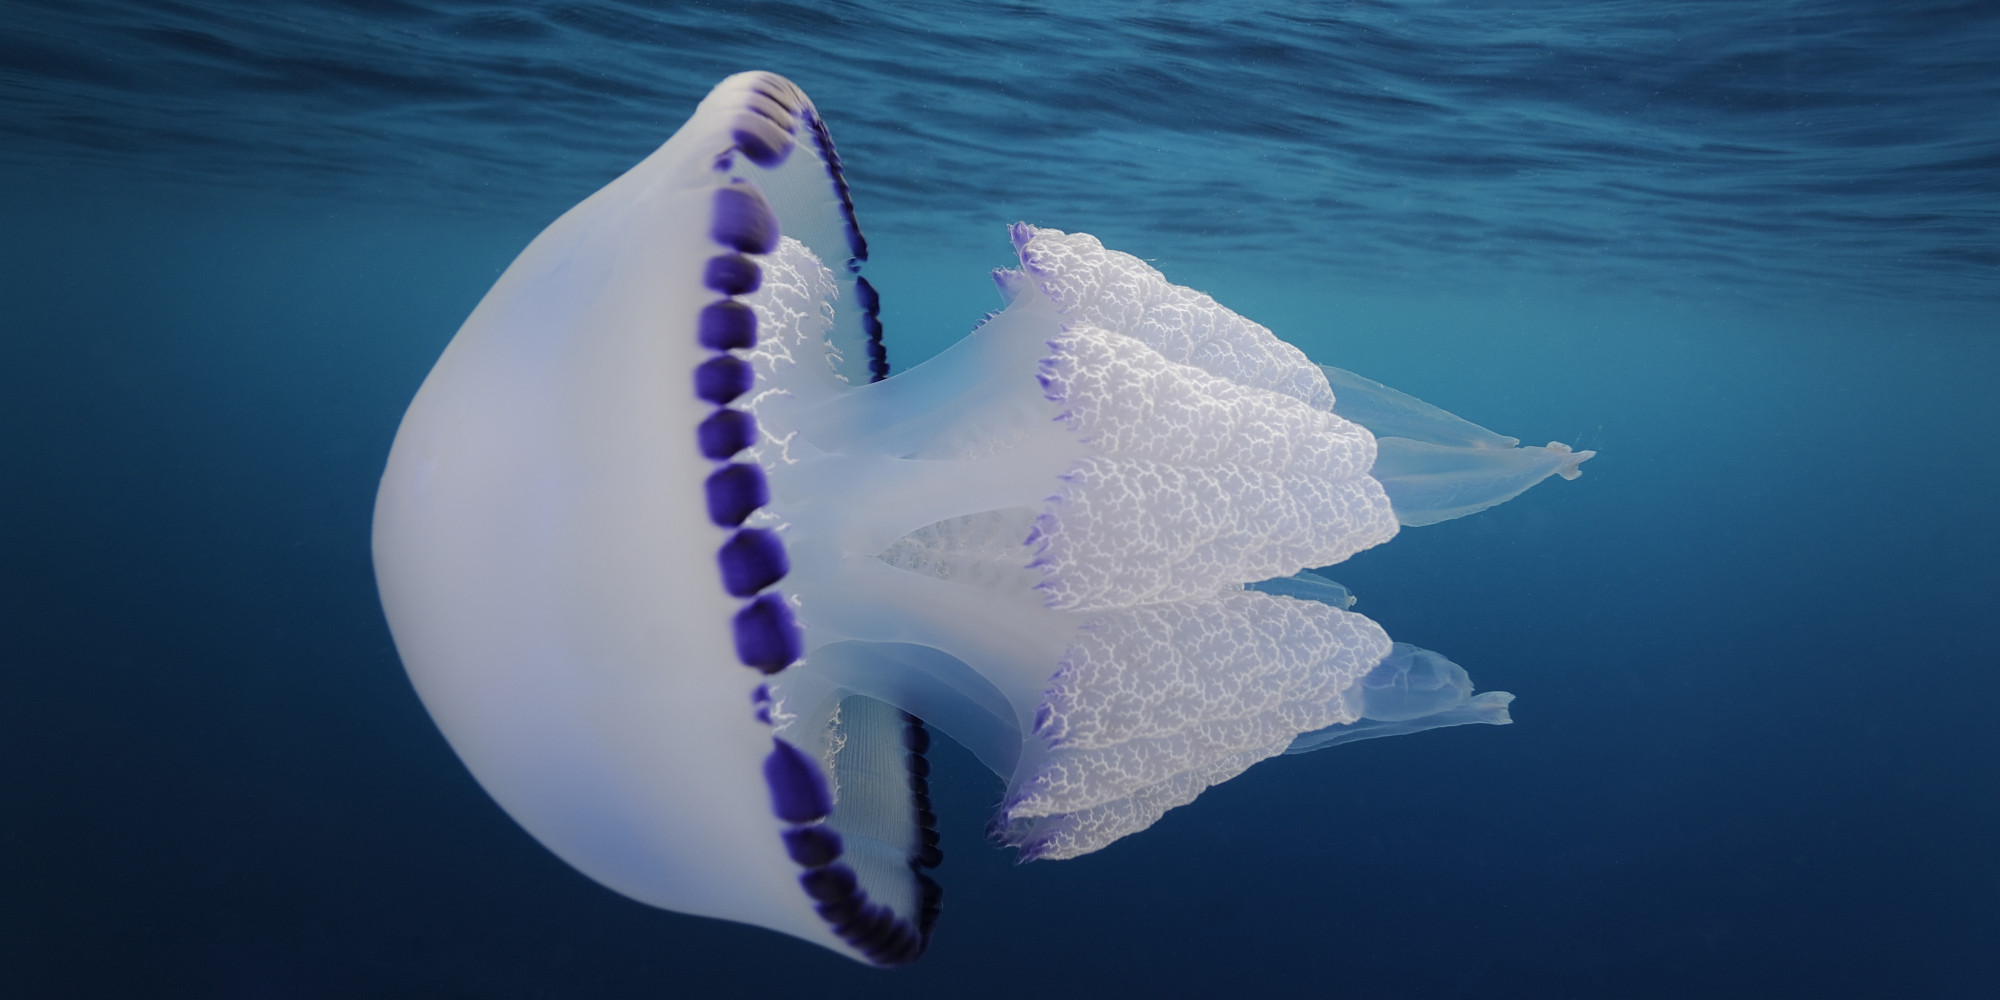 Jellyfish Pictures | London based Animation & VFX